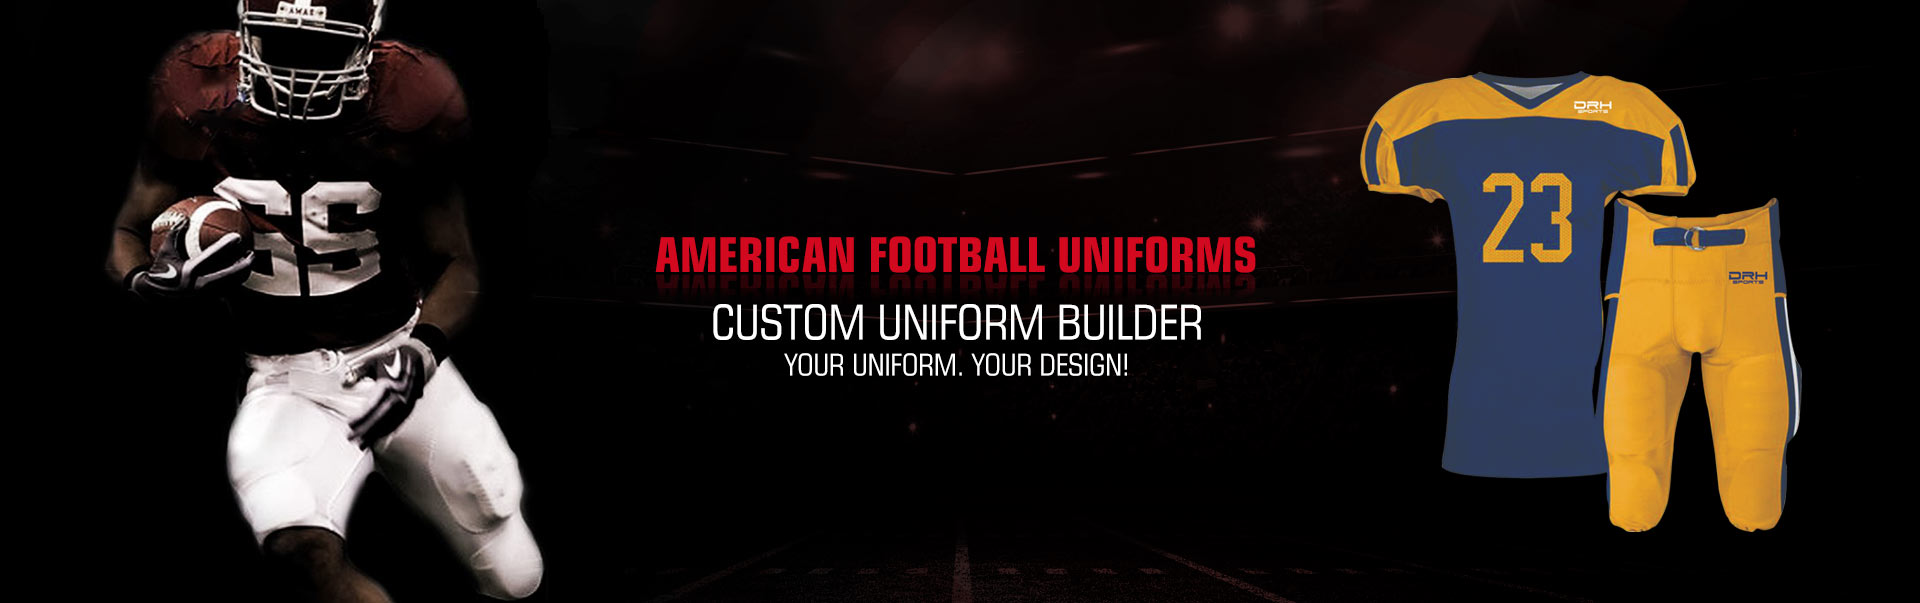 American Football Uniform Wholesaler, Suppliers in Pakistan